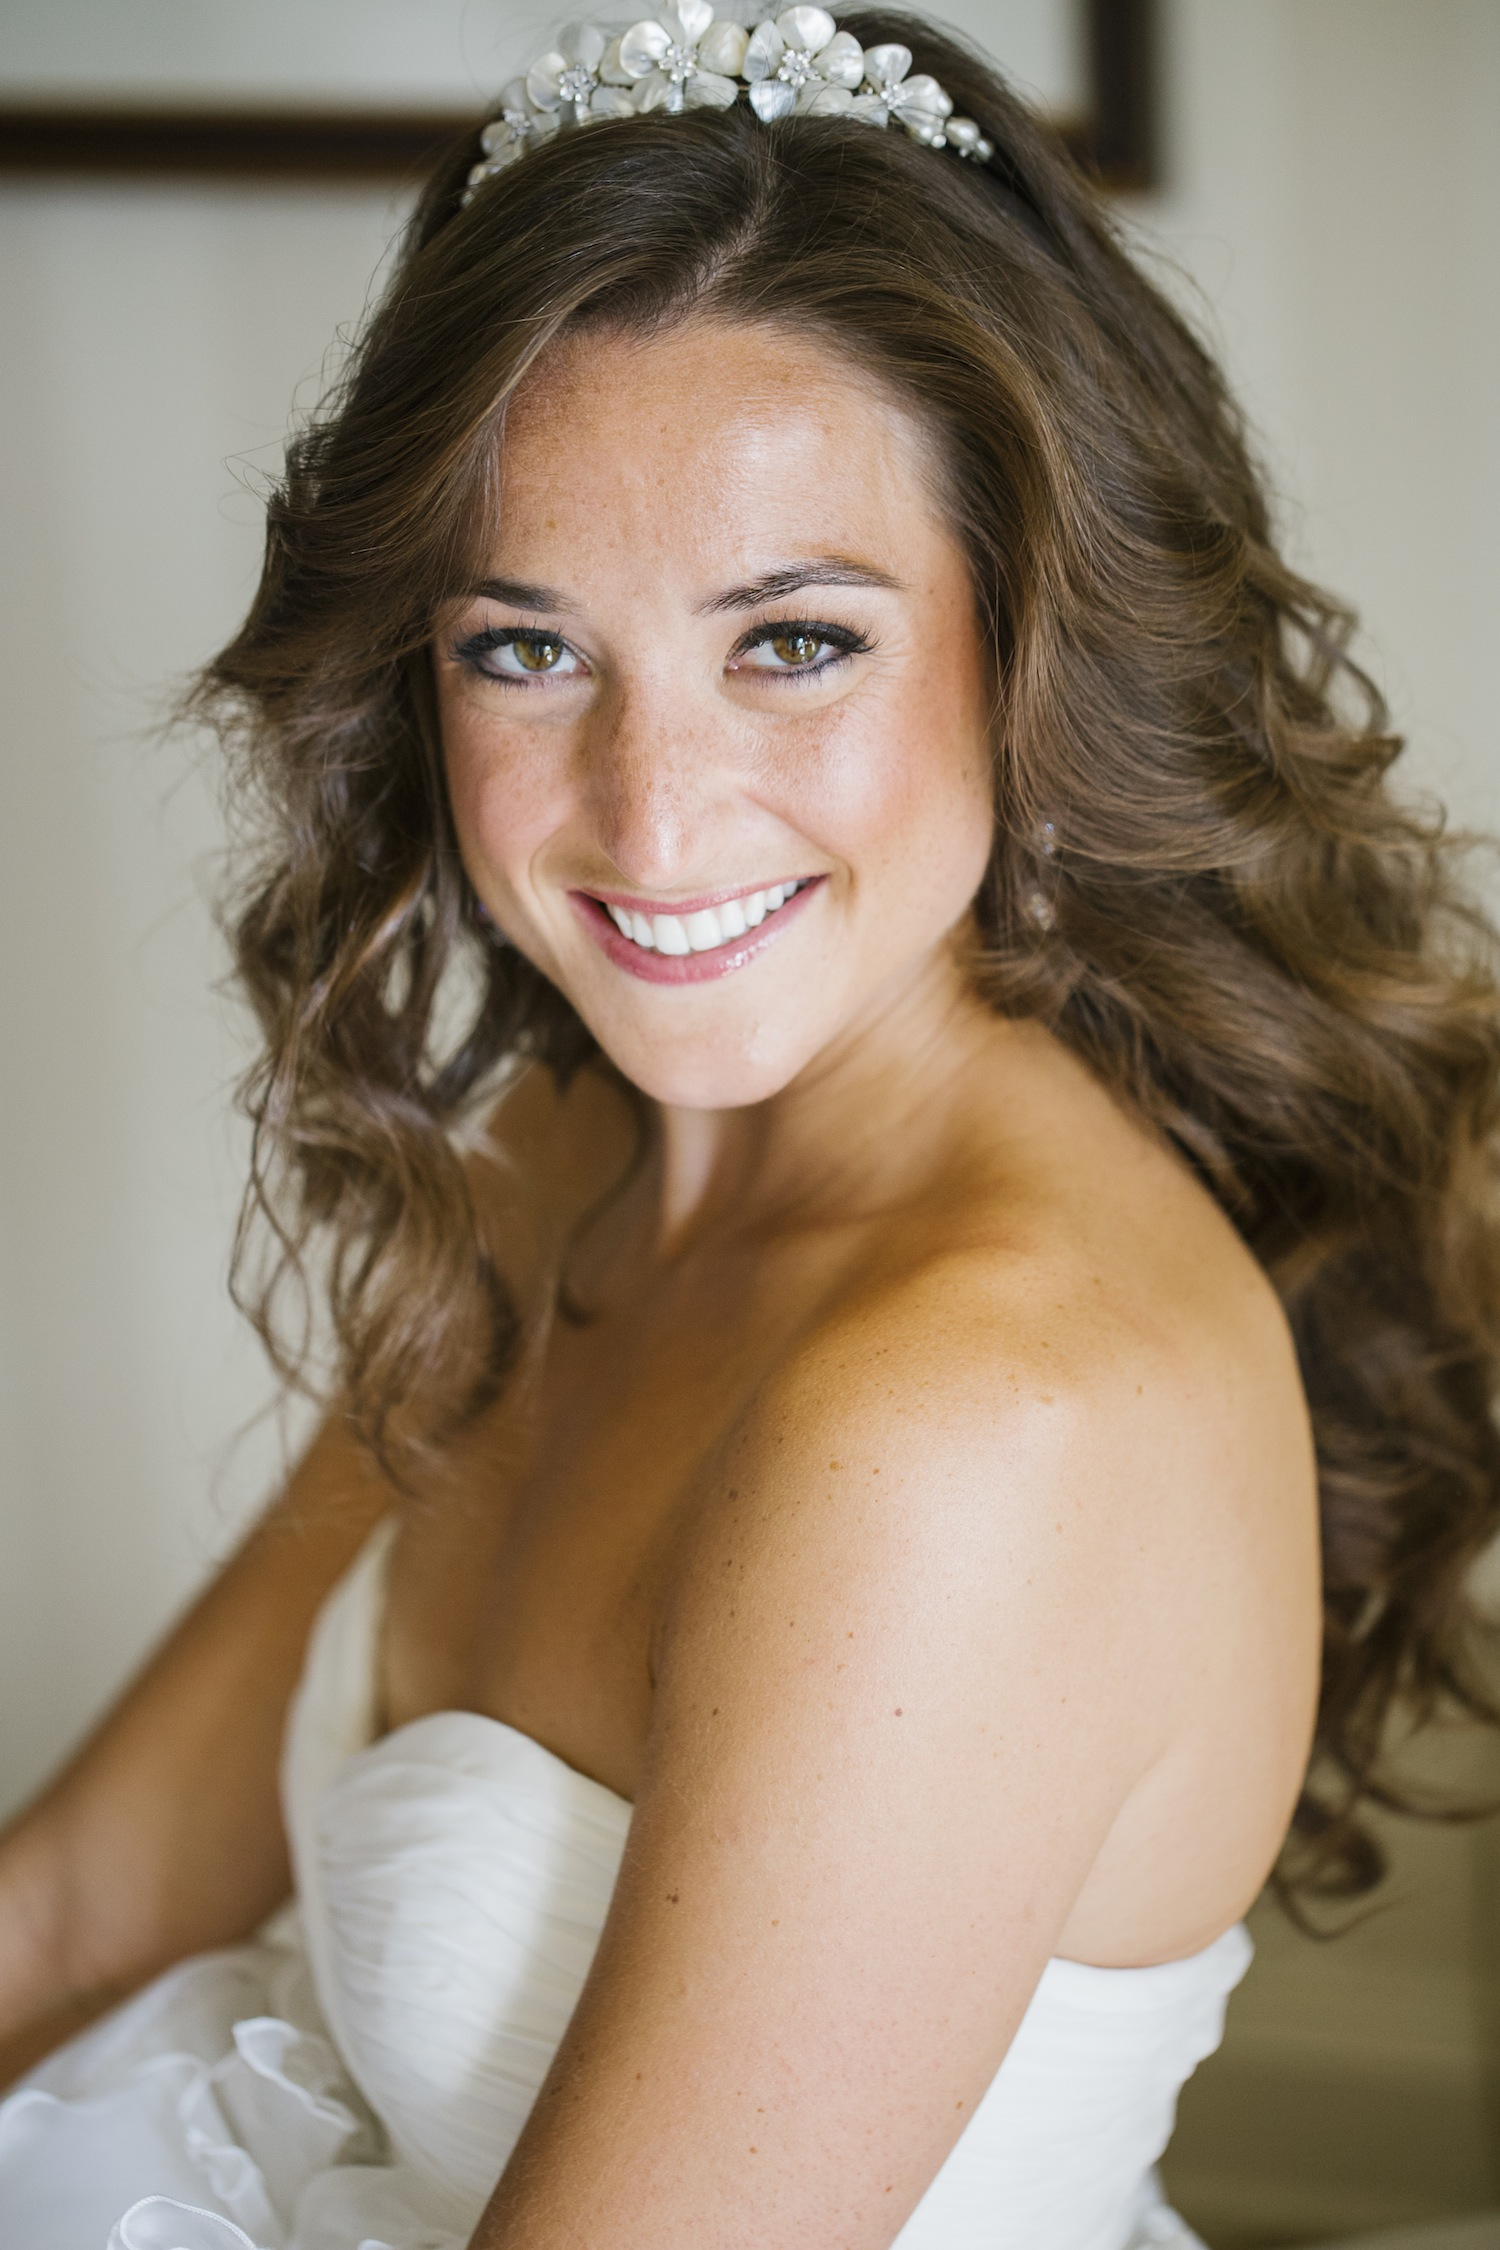 Bride with long curled brunette hair and tiara headpiece wedding ideas